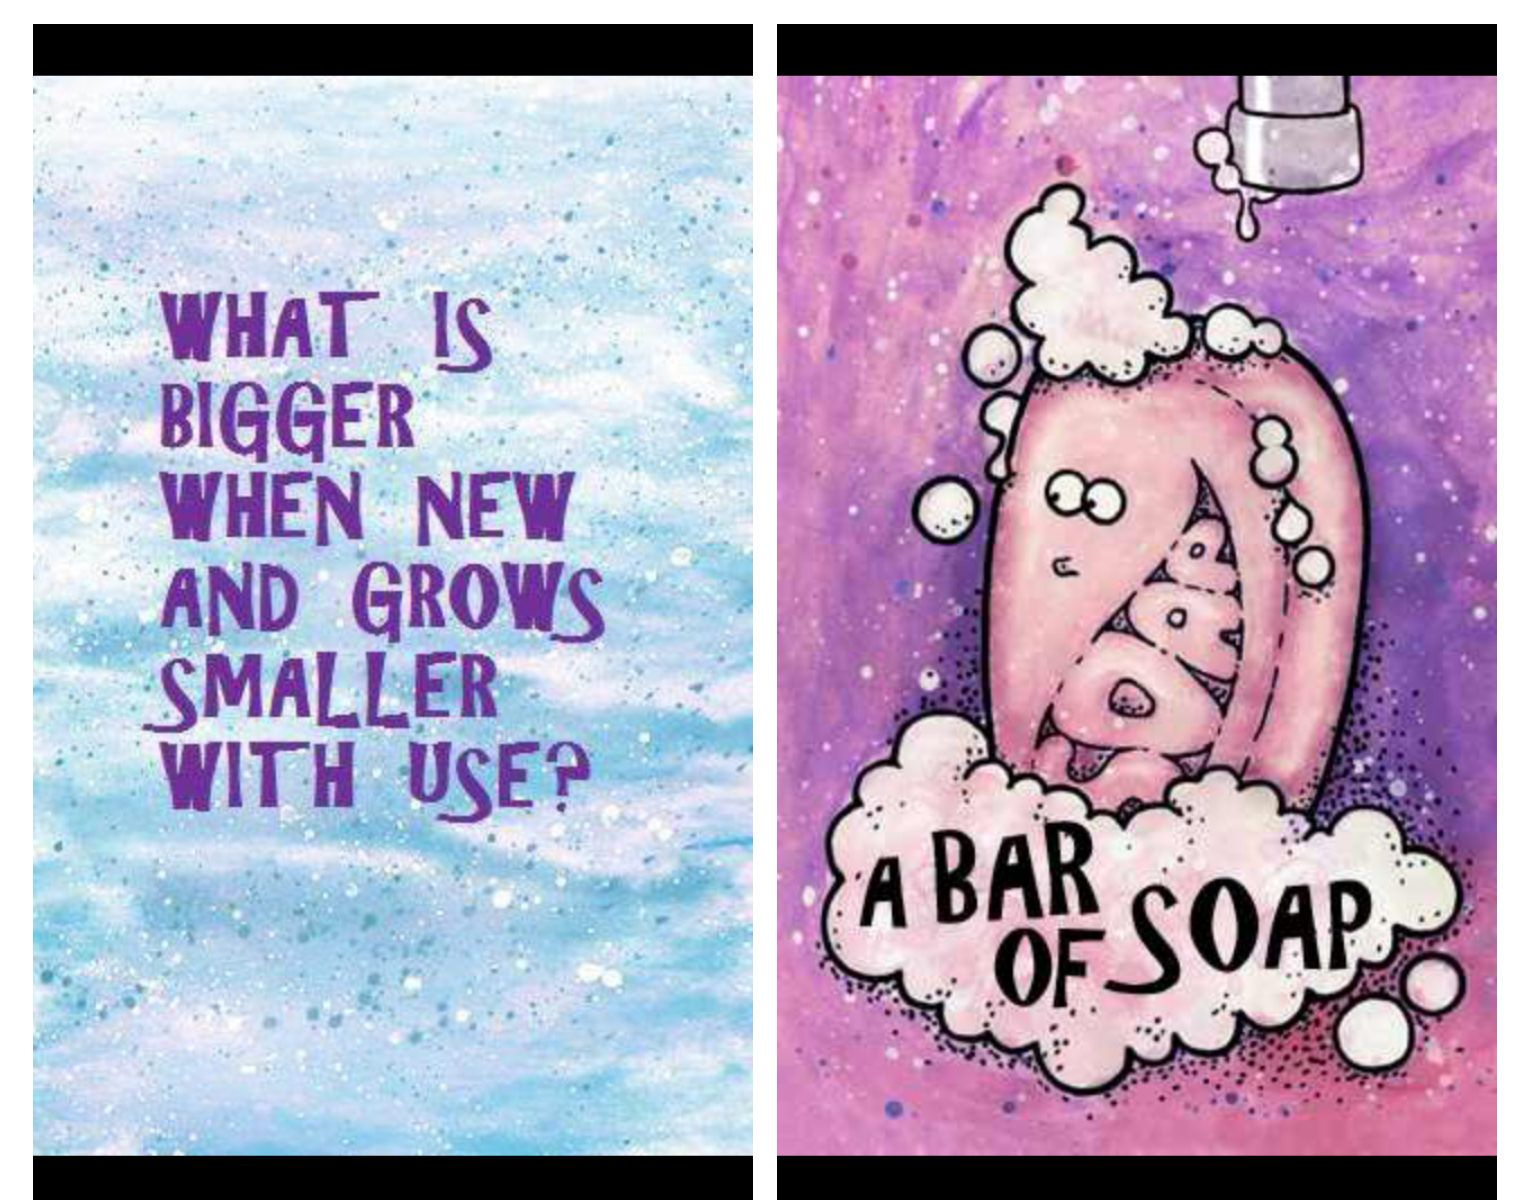 Interesting riddles about soap